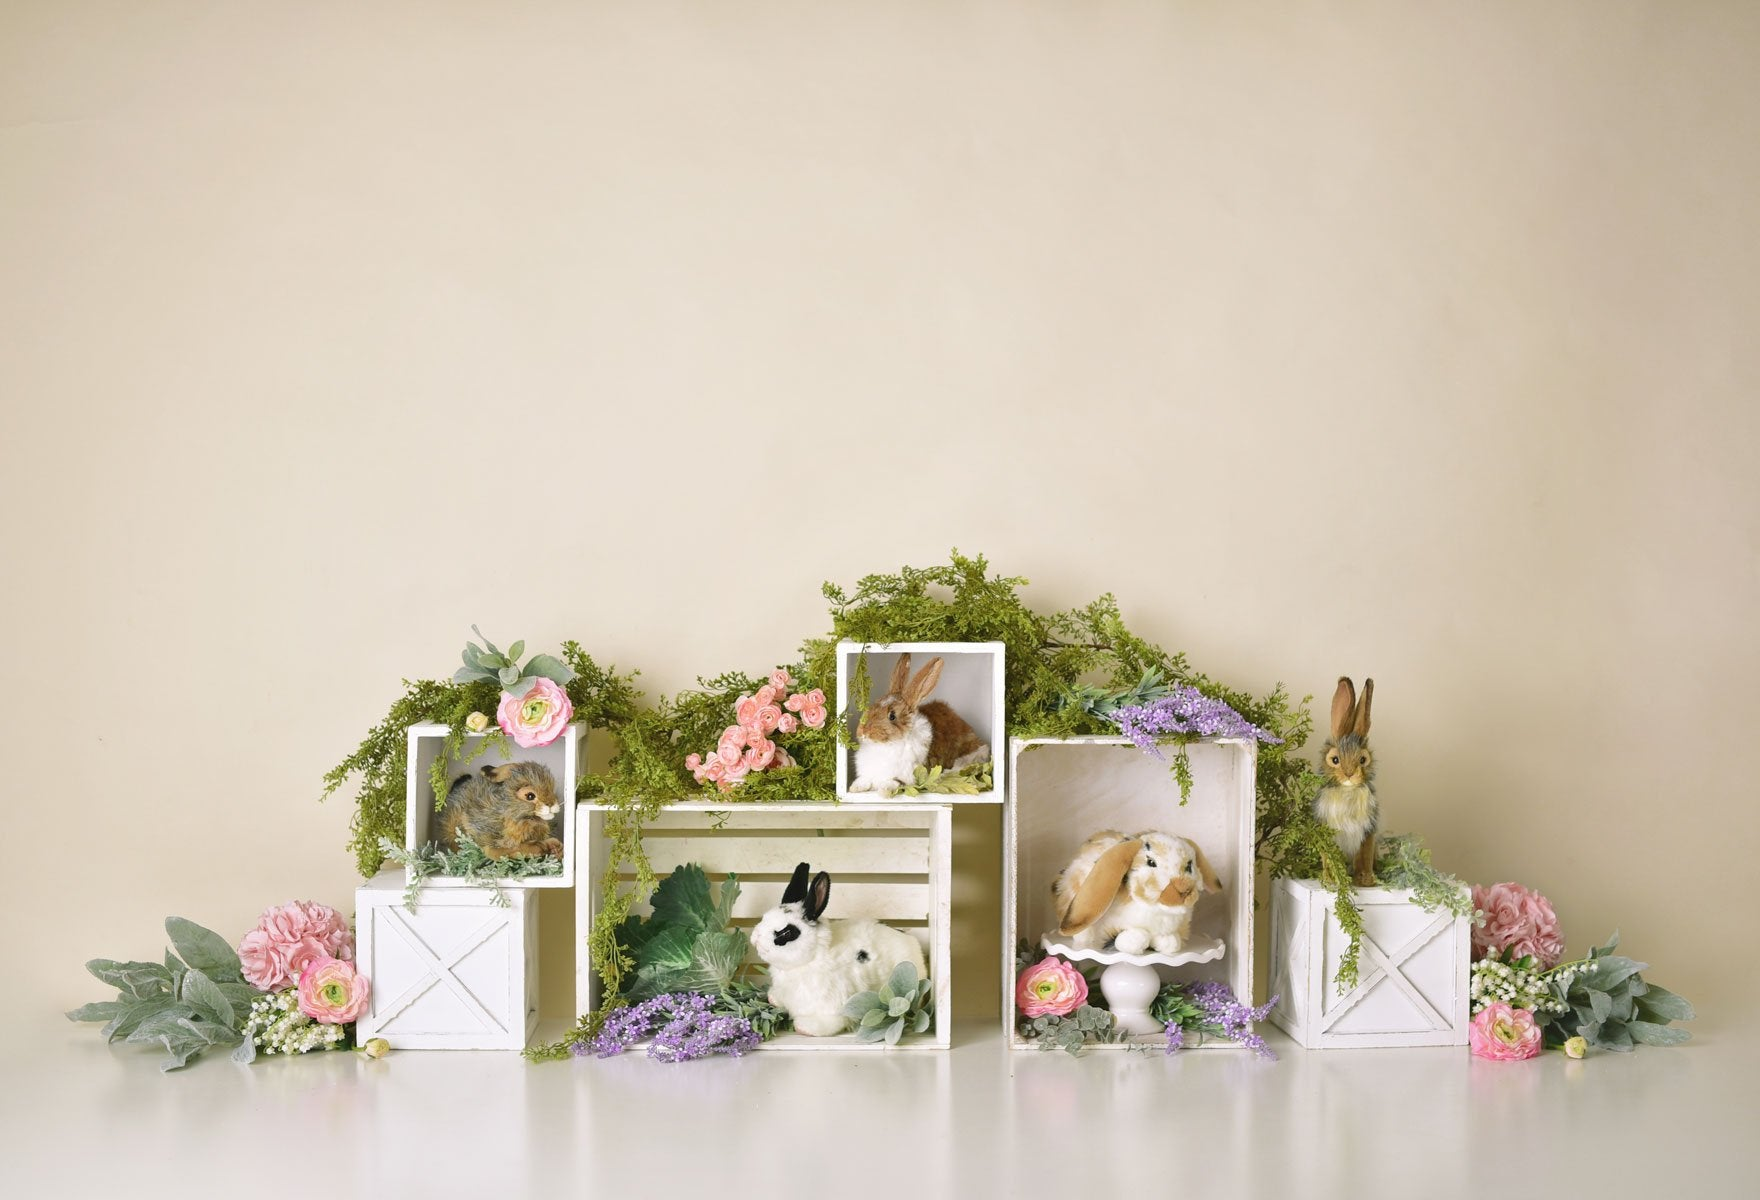 Load image into Gallery viewer, Kate Spring Rabbits Flowers Children Easter Backdrop for Photography Designed by Mandy Ringe Photography